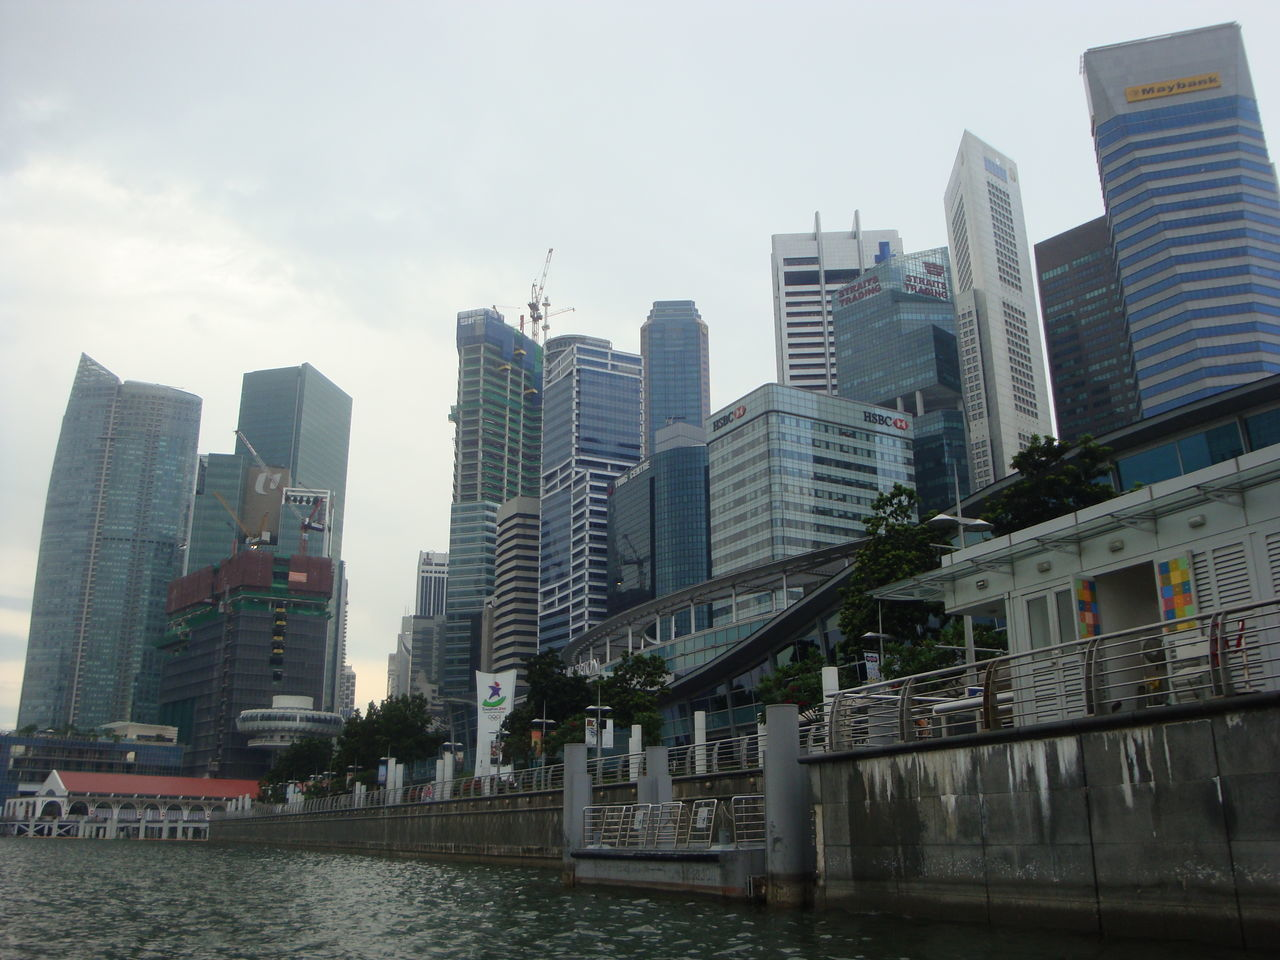 architecture, built structure, building exterior, skyscraper, city, river, modern, water, sky, outdoors, day, no people, waterfront, travel destinations, low angle view, growth, tall, urban skyline, tree, cityscape